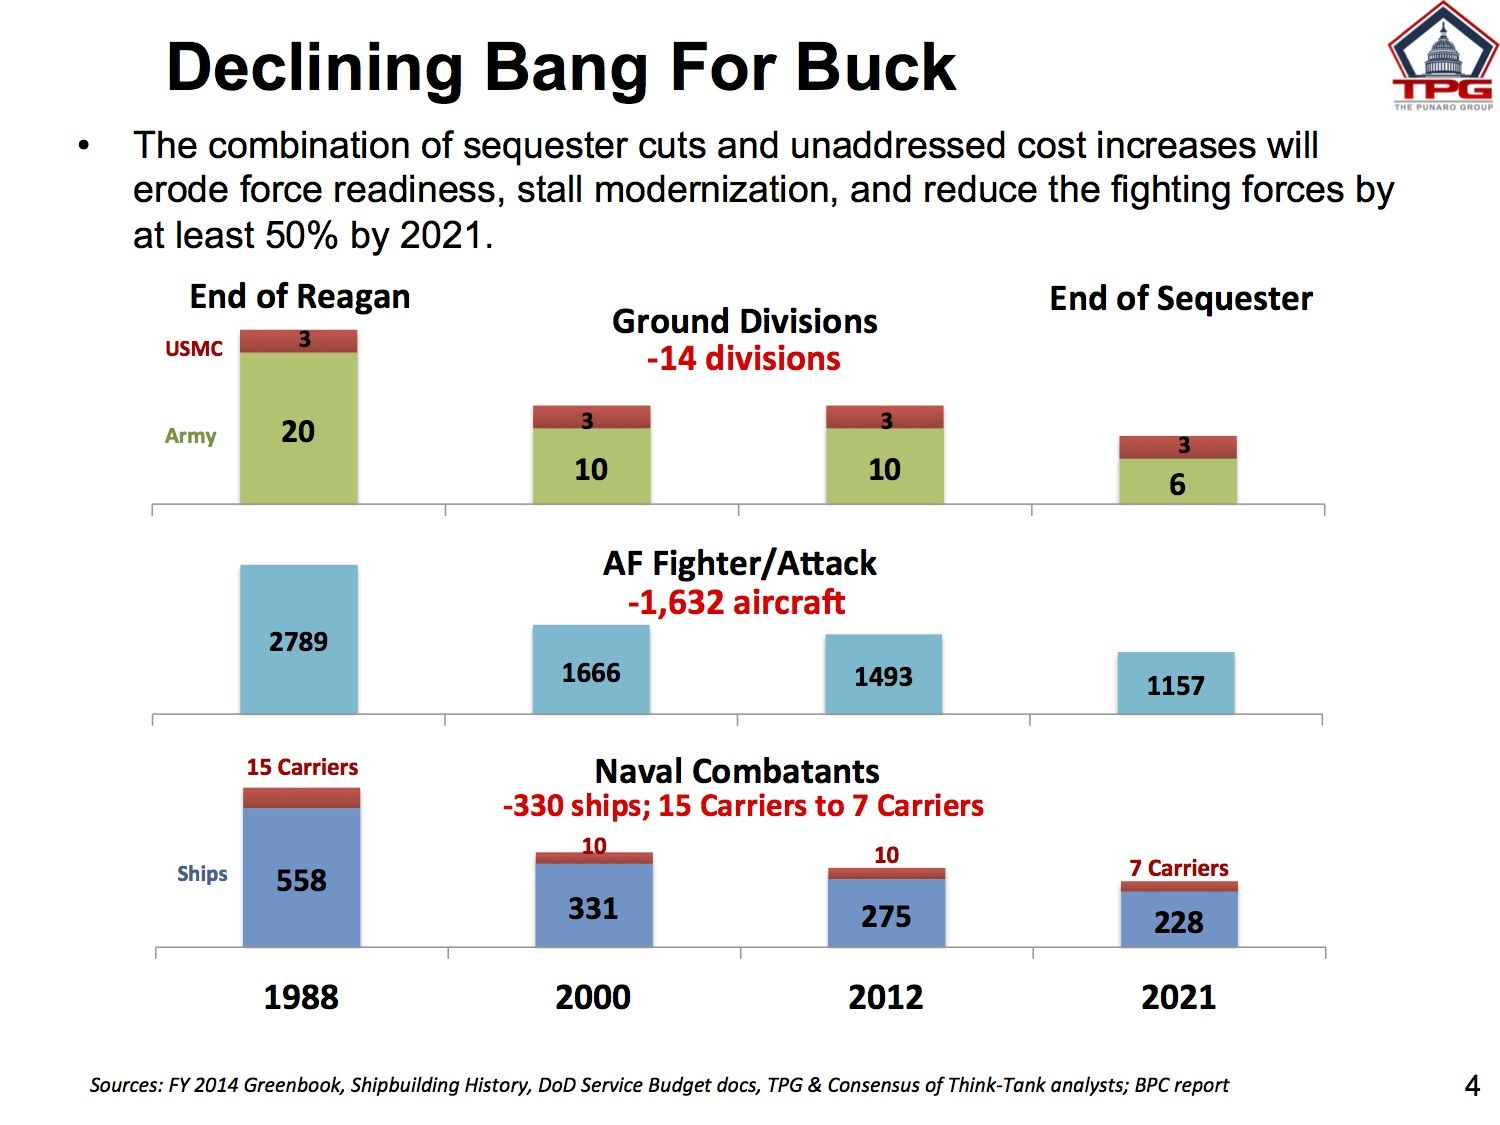 Declining Bang for the Buck brief-CSIS-11-7-2013